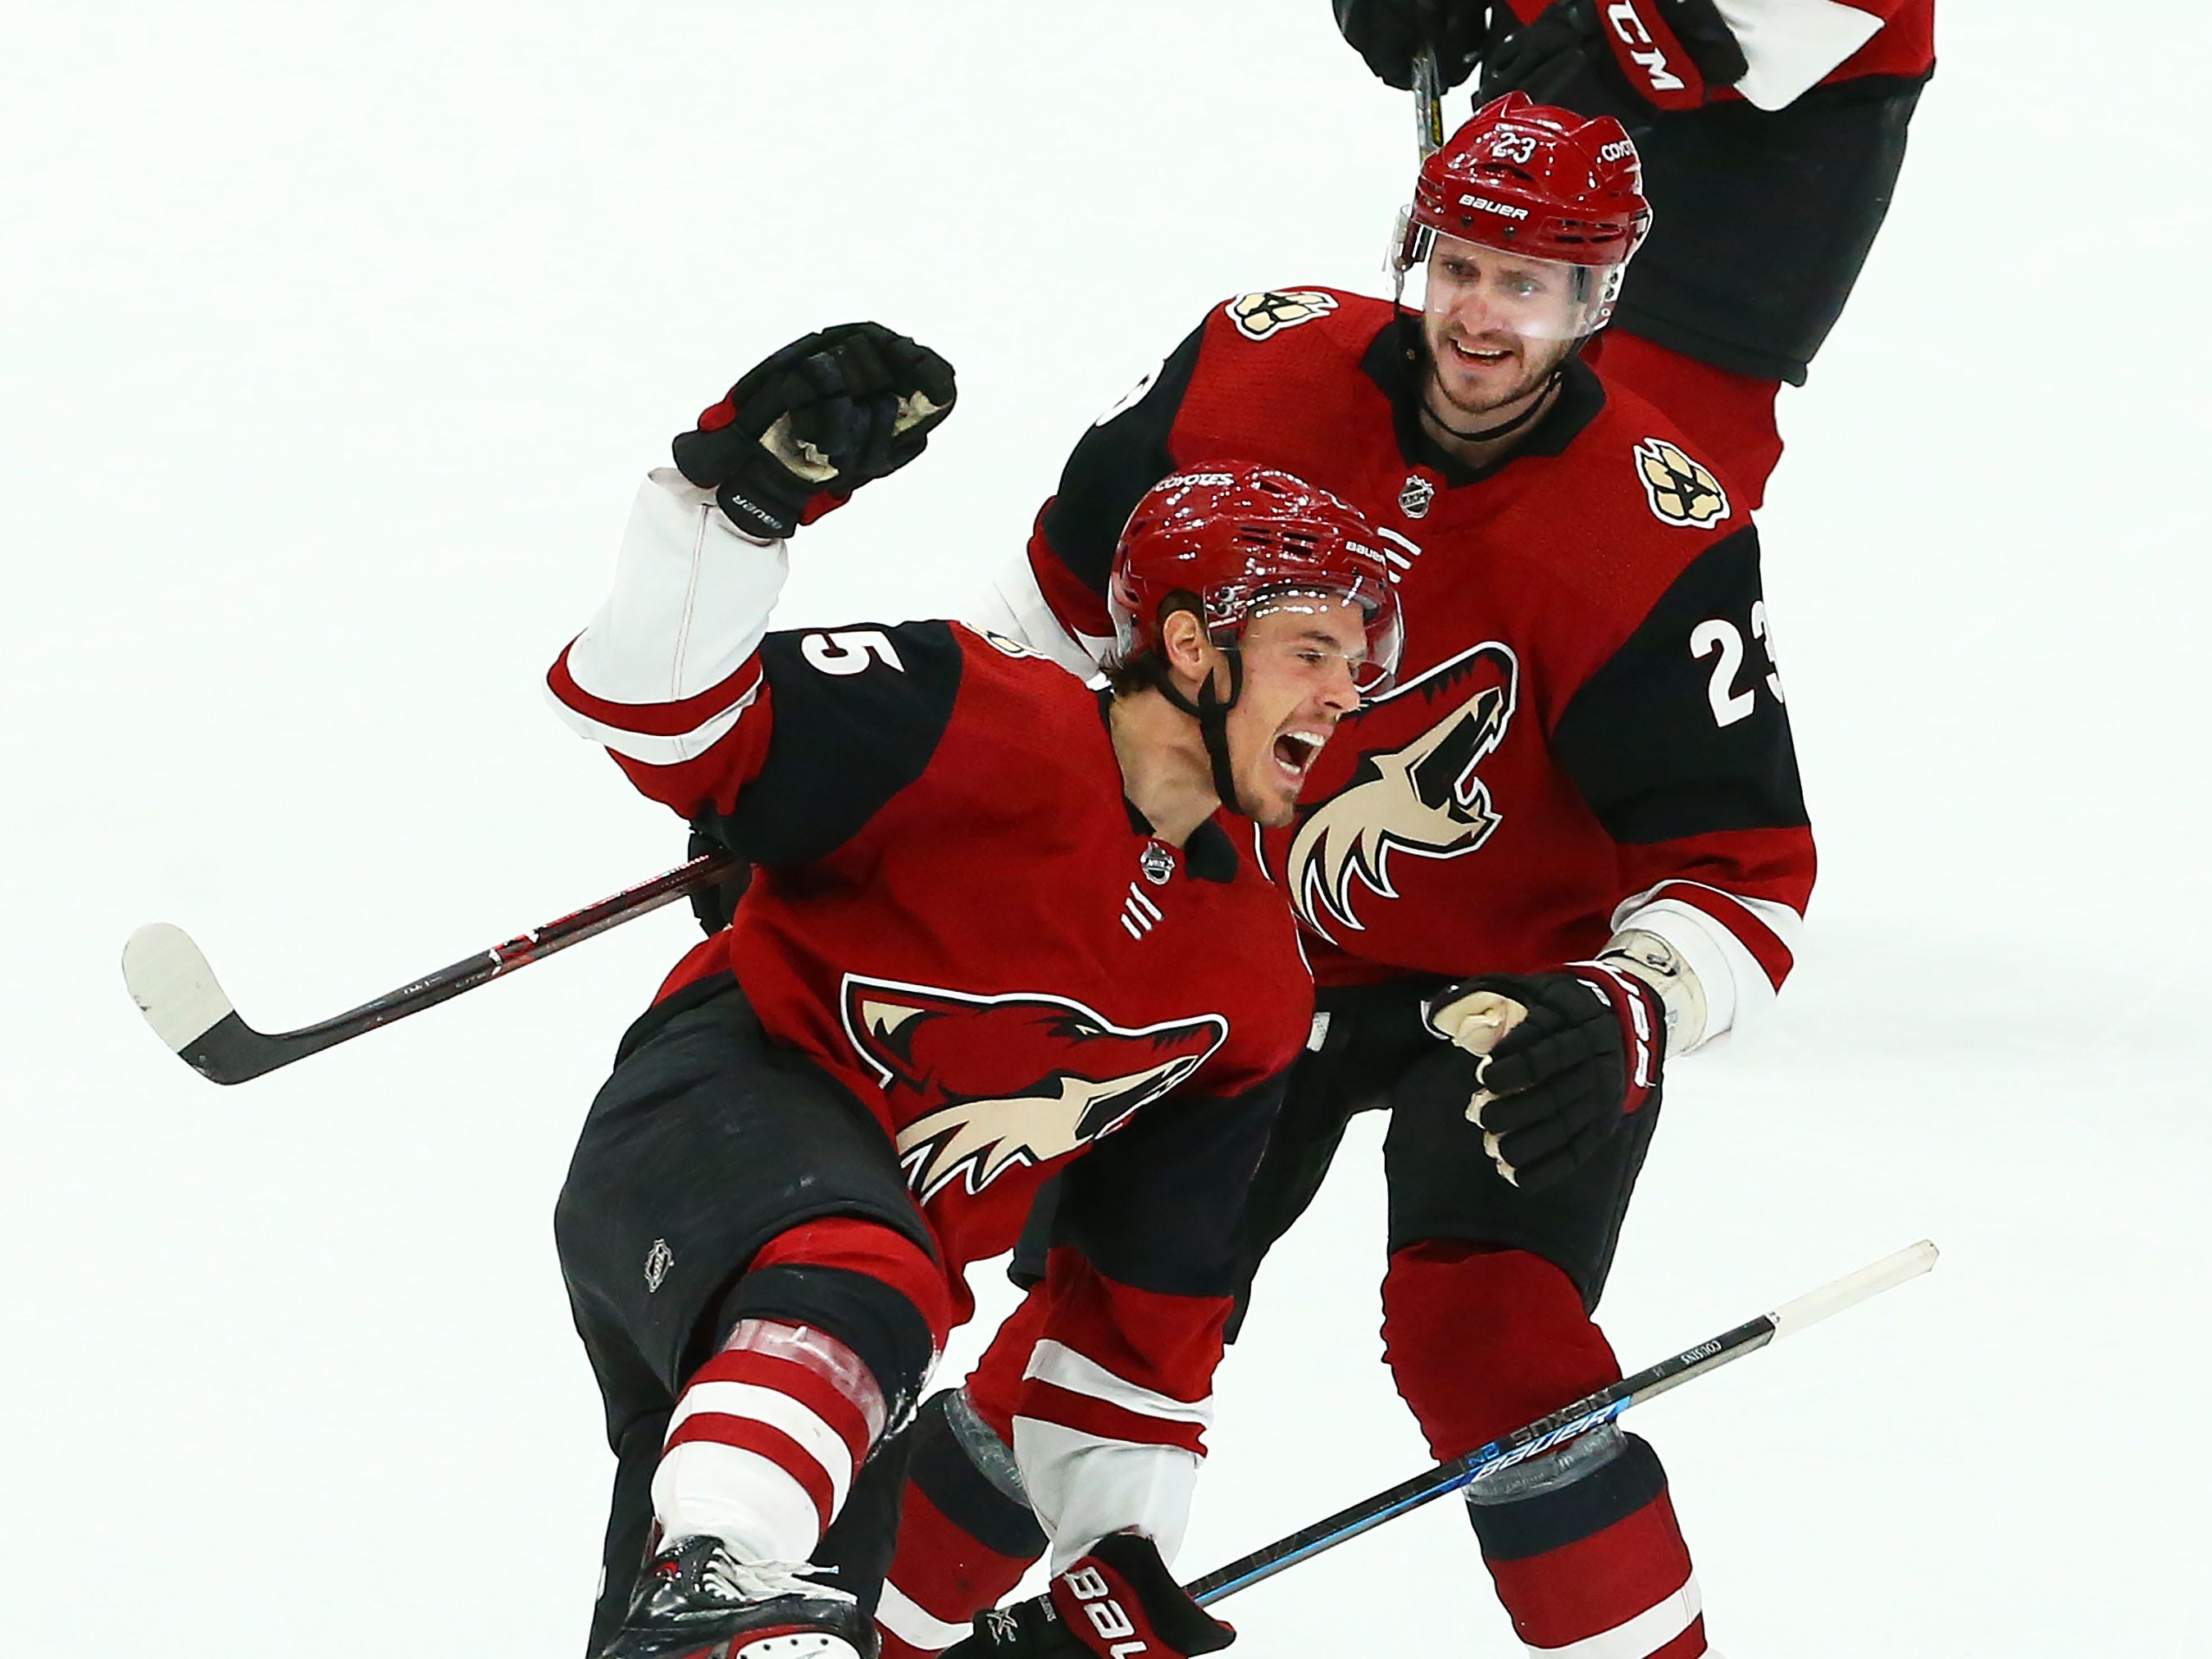 Arizona Coyotes center Nick Cousins (25) celebrates after scoring a goal against the Chicago Blackhawks in the third period on Mar. 26, 2019, at Gila River Arena in Glendale, Ariz.